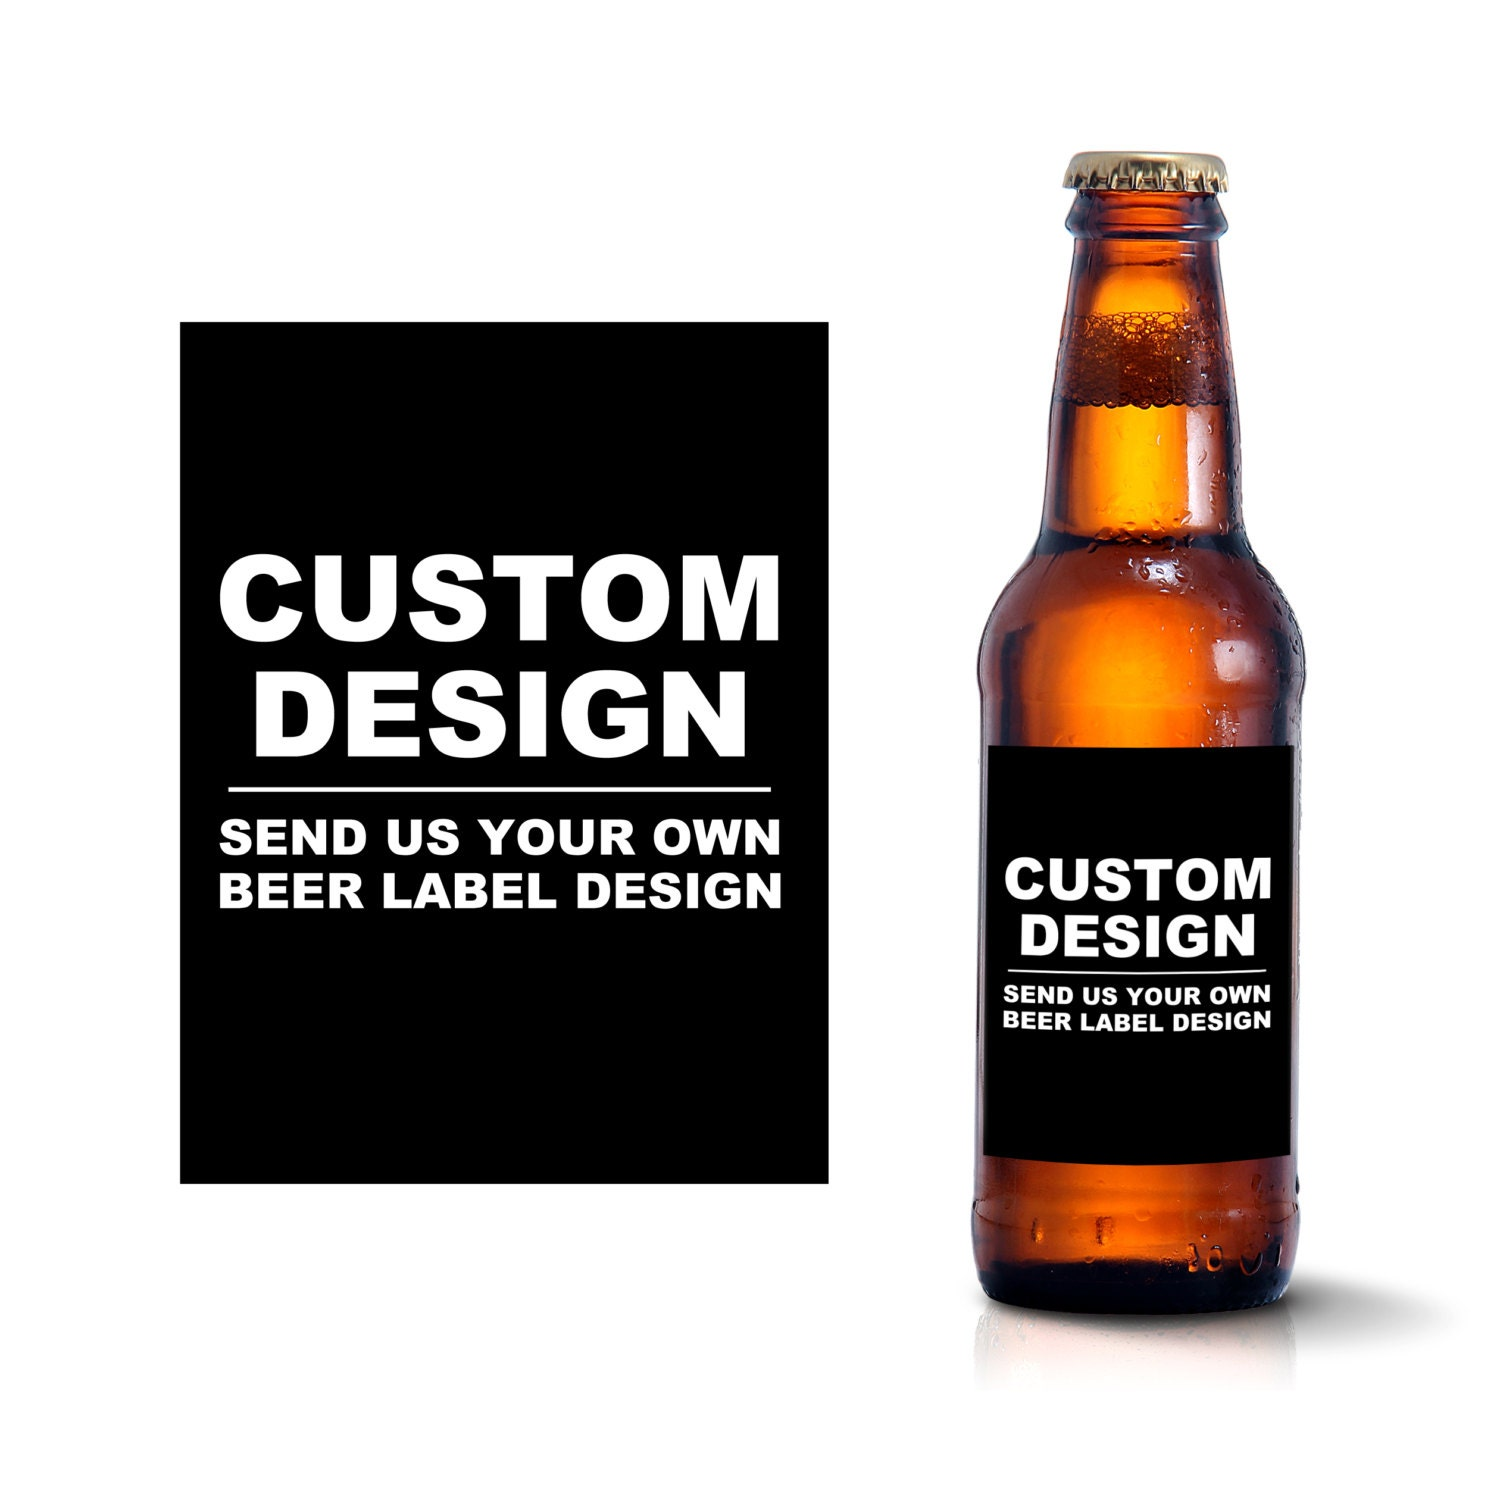 custom beer bottle labels create your own beer label design With beer with your own label